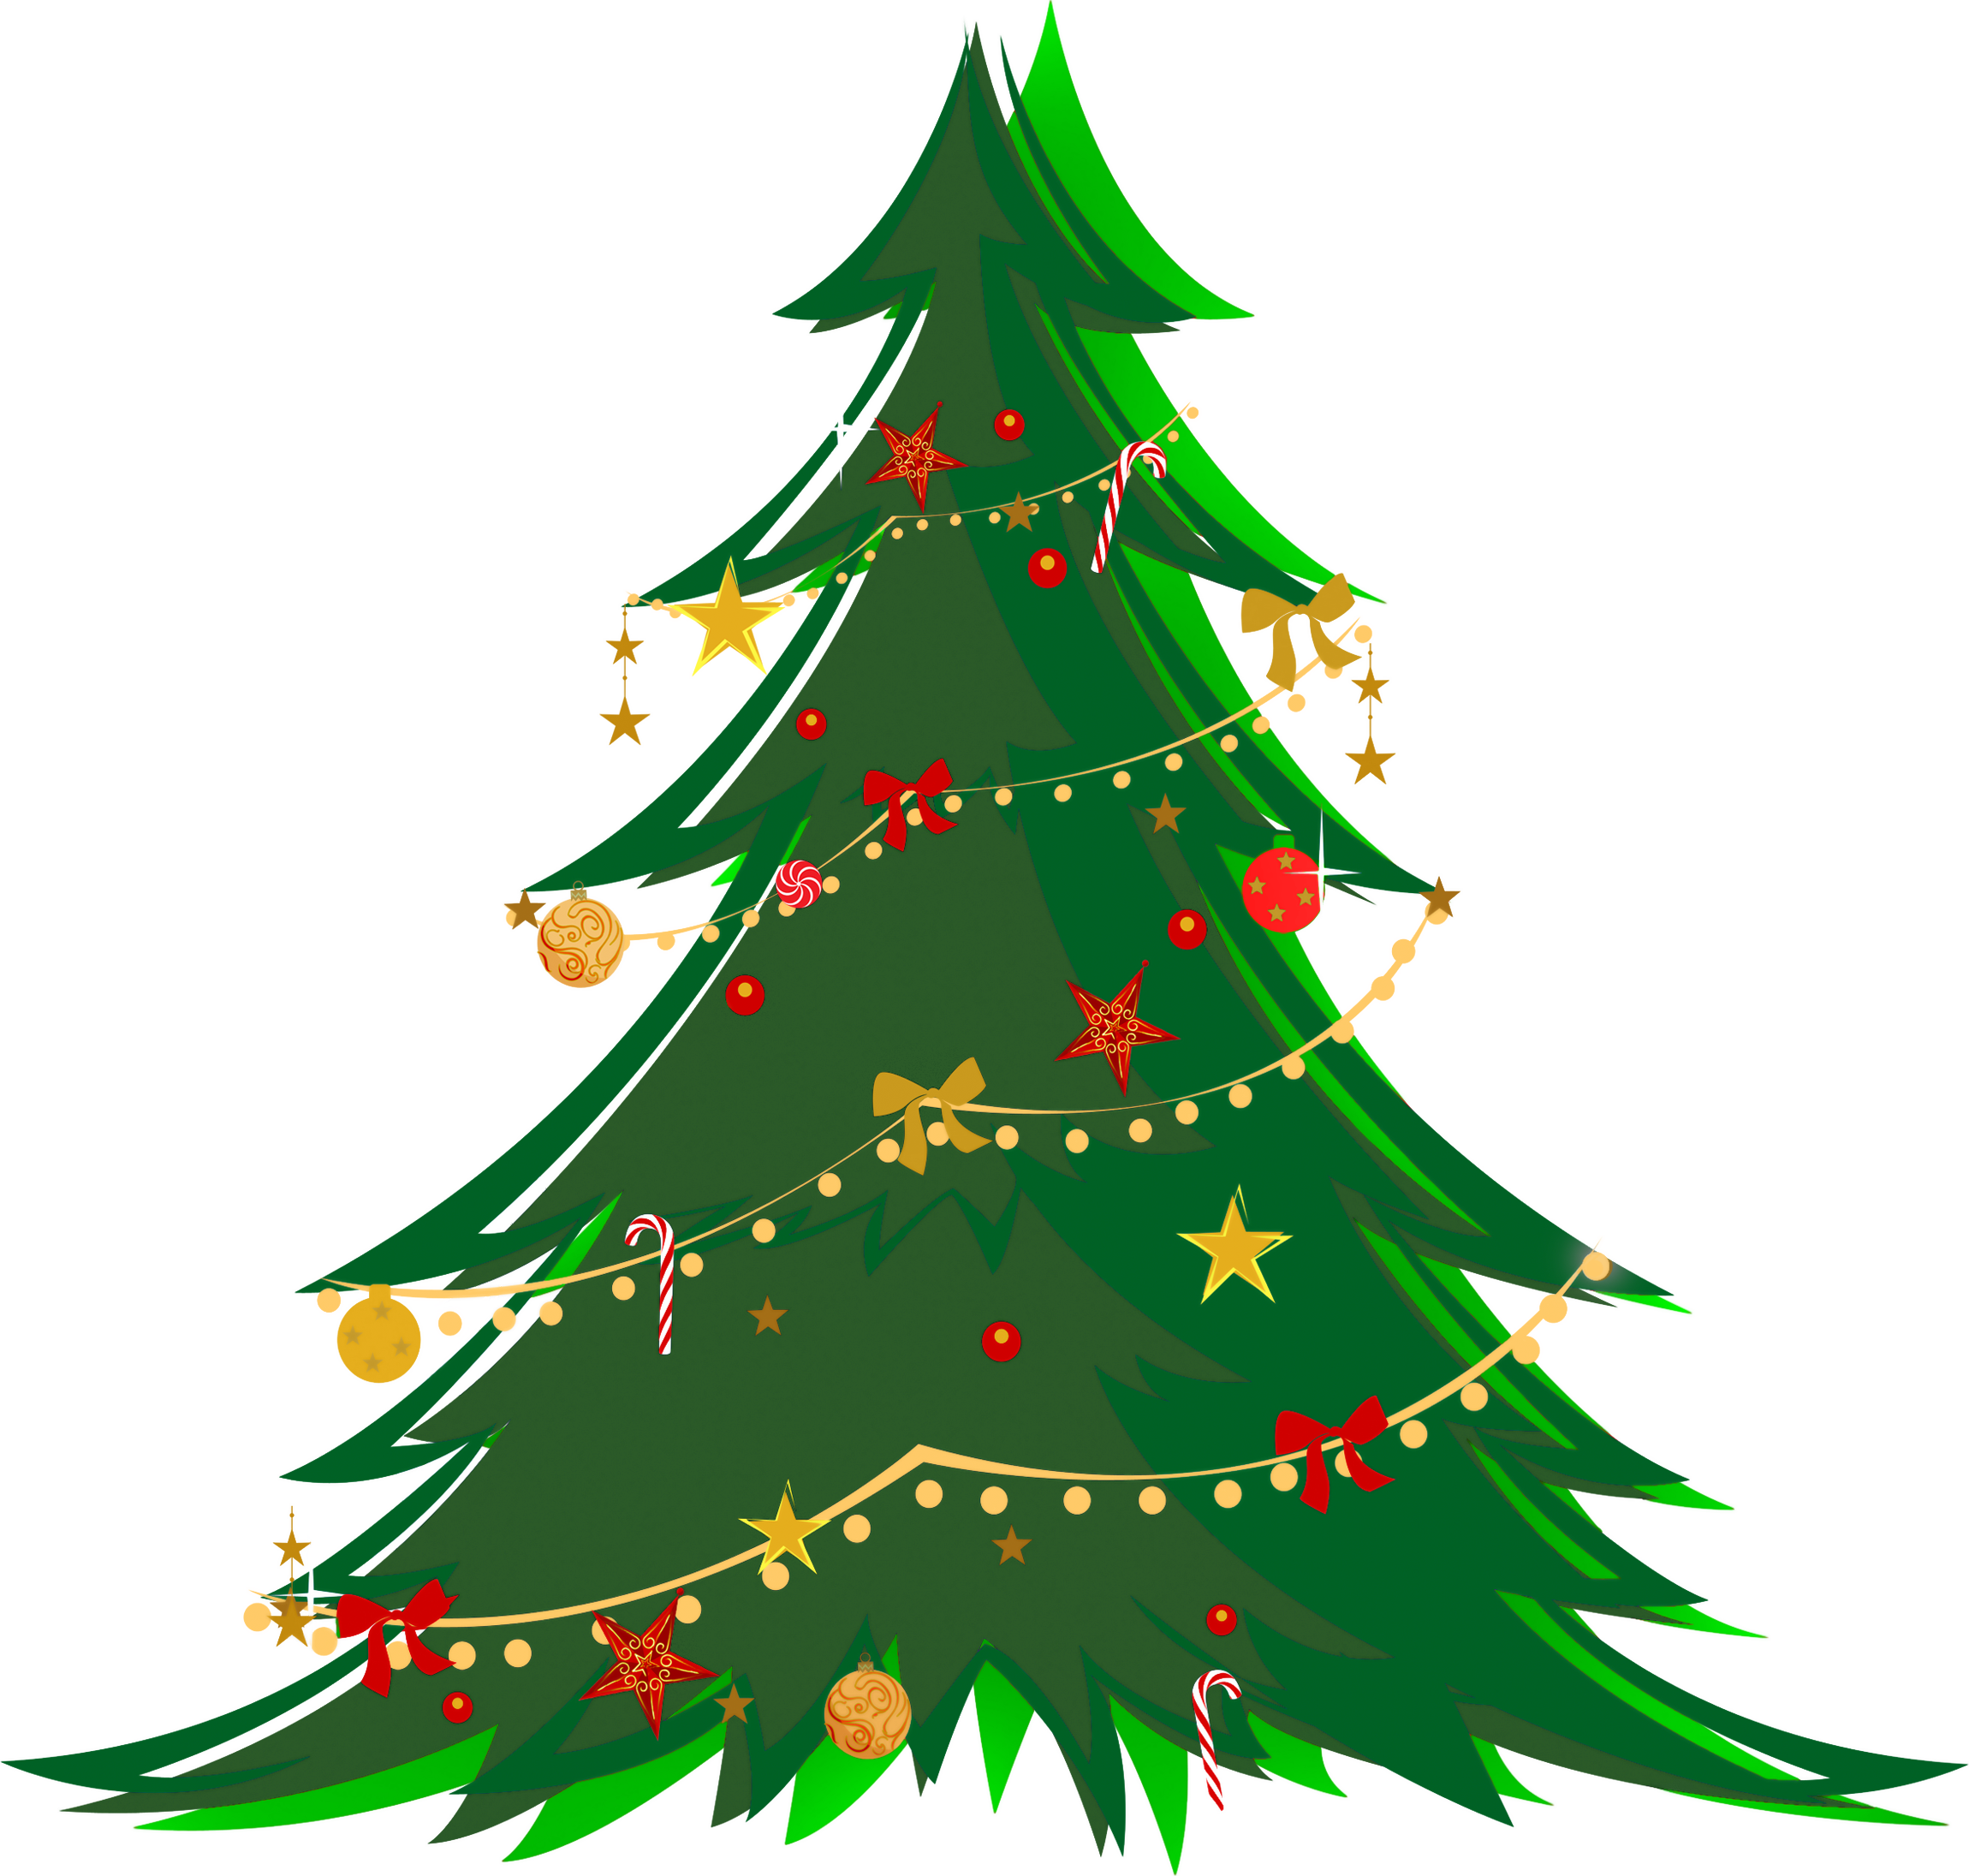 Free christmas cliparts download. Holiday clipart transparent background